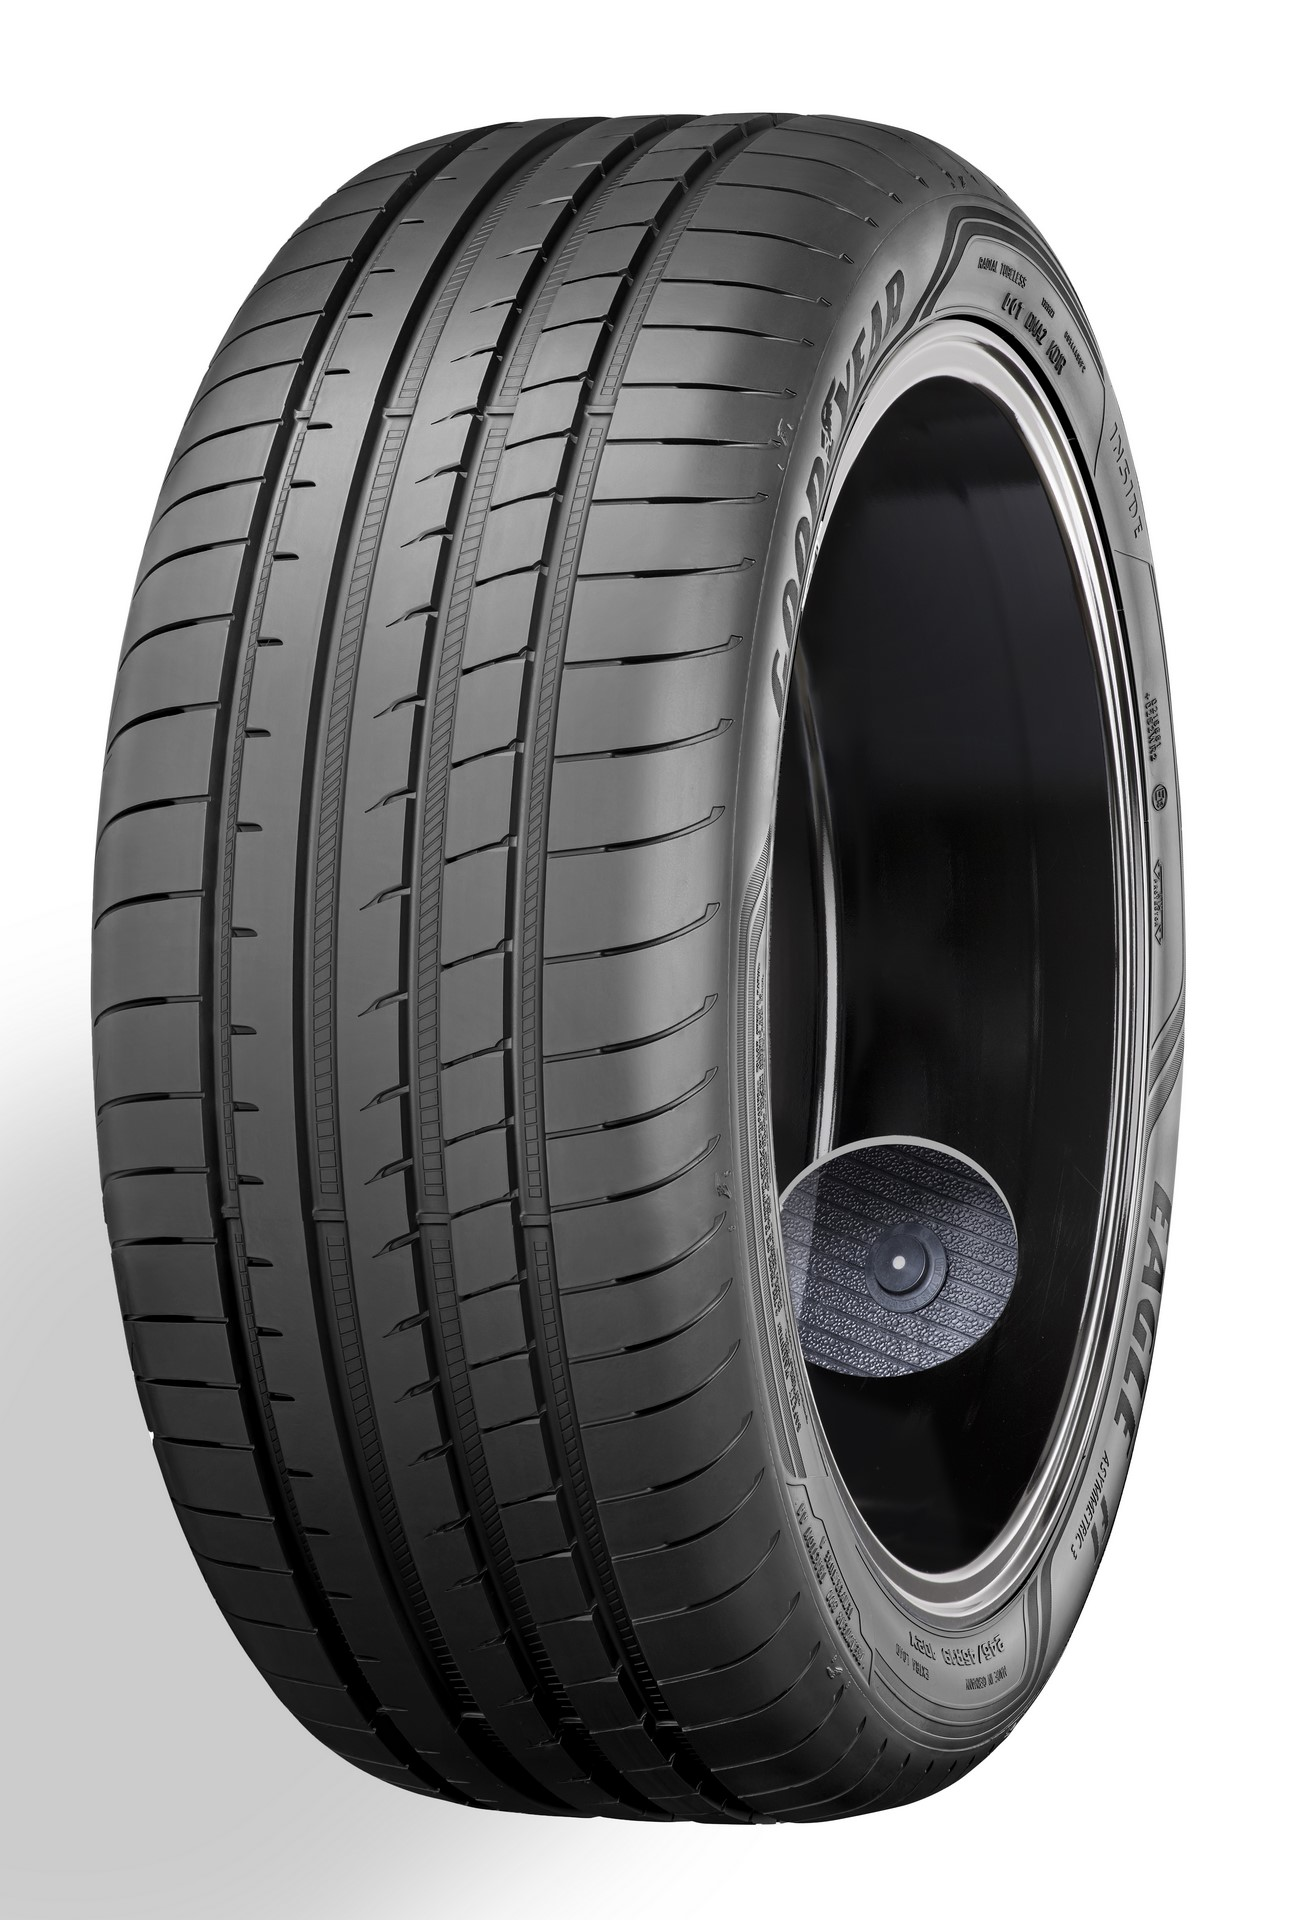 Goodyear Intelligent Tire (3)